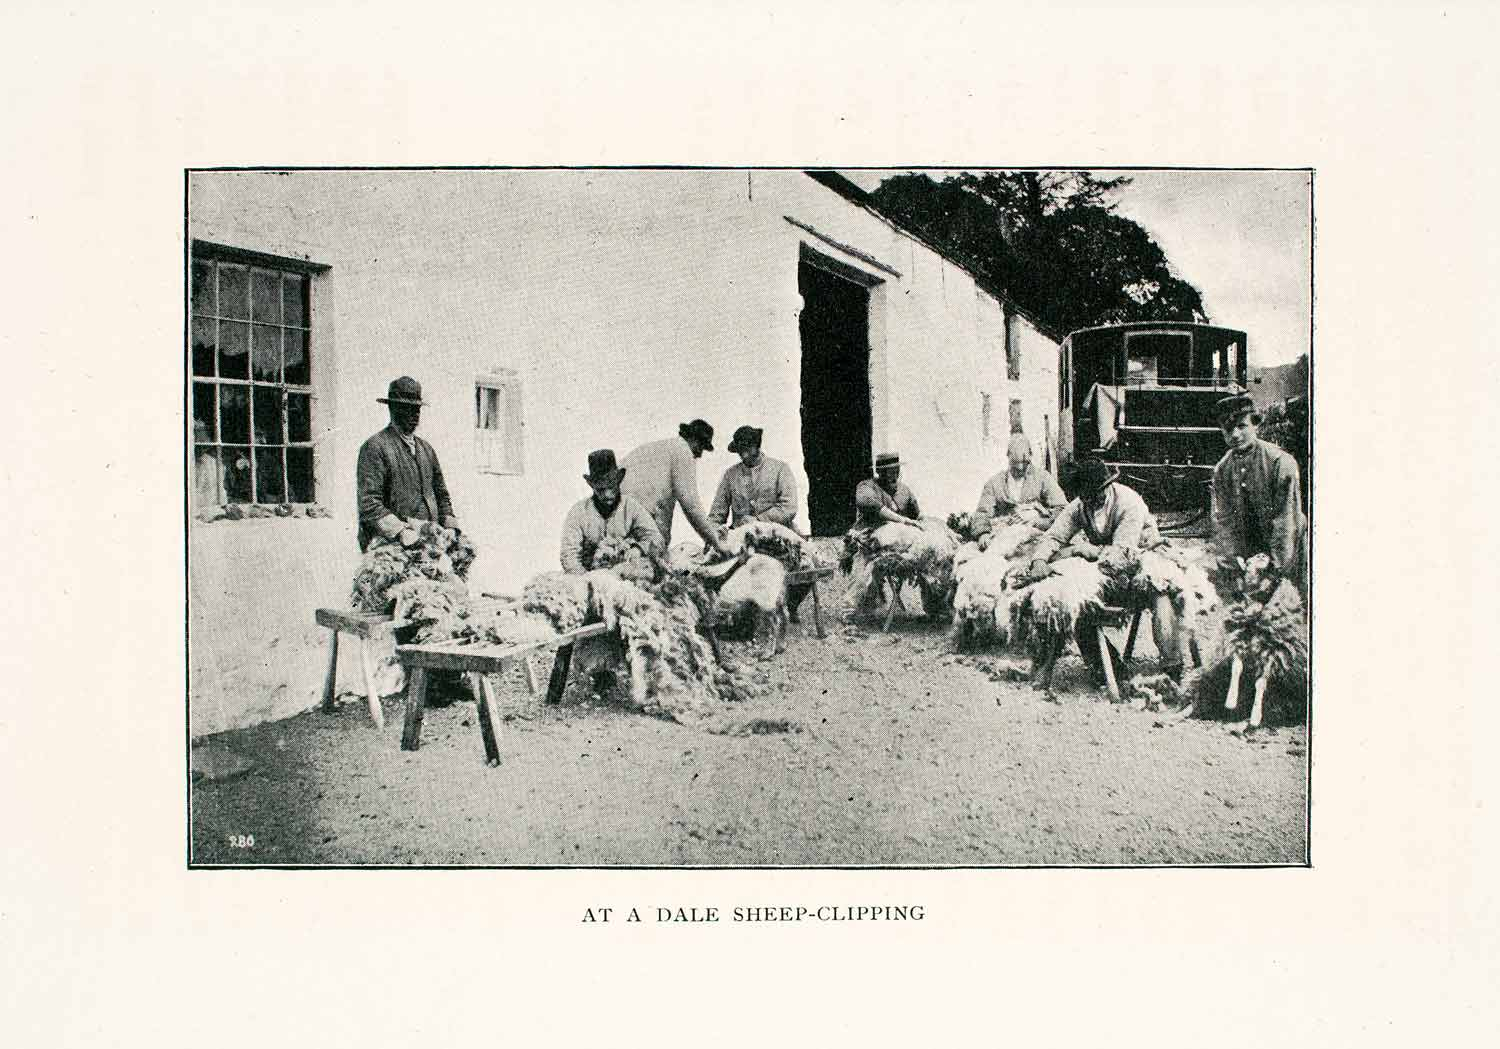 1902 Print Dale Sheep Clipping Wool England Animal Sheering Agriculture XGEA3